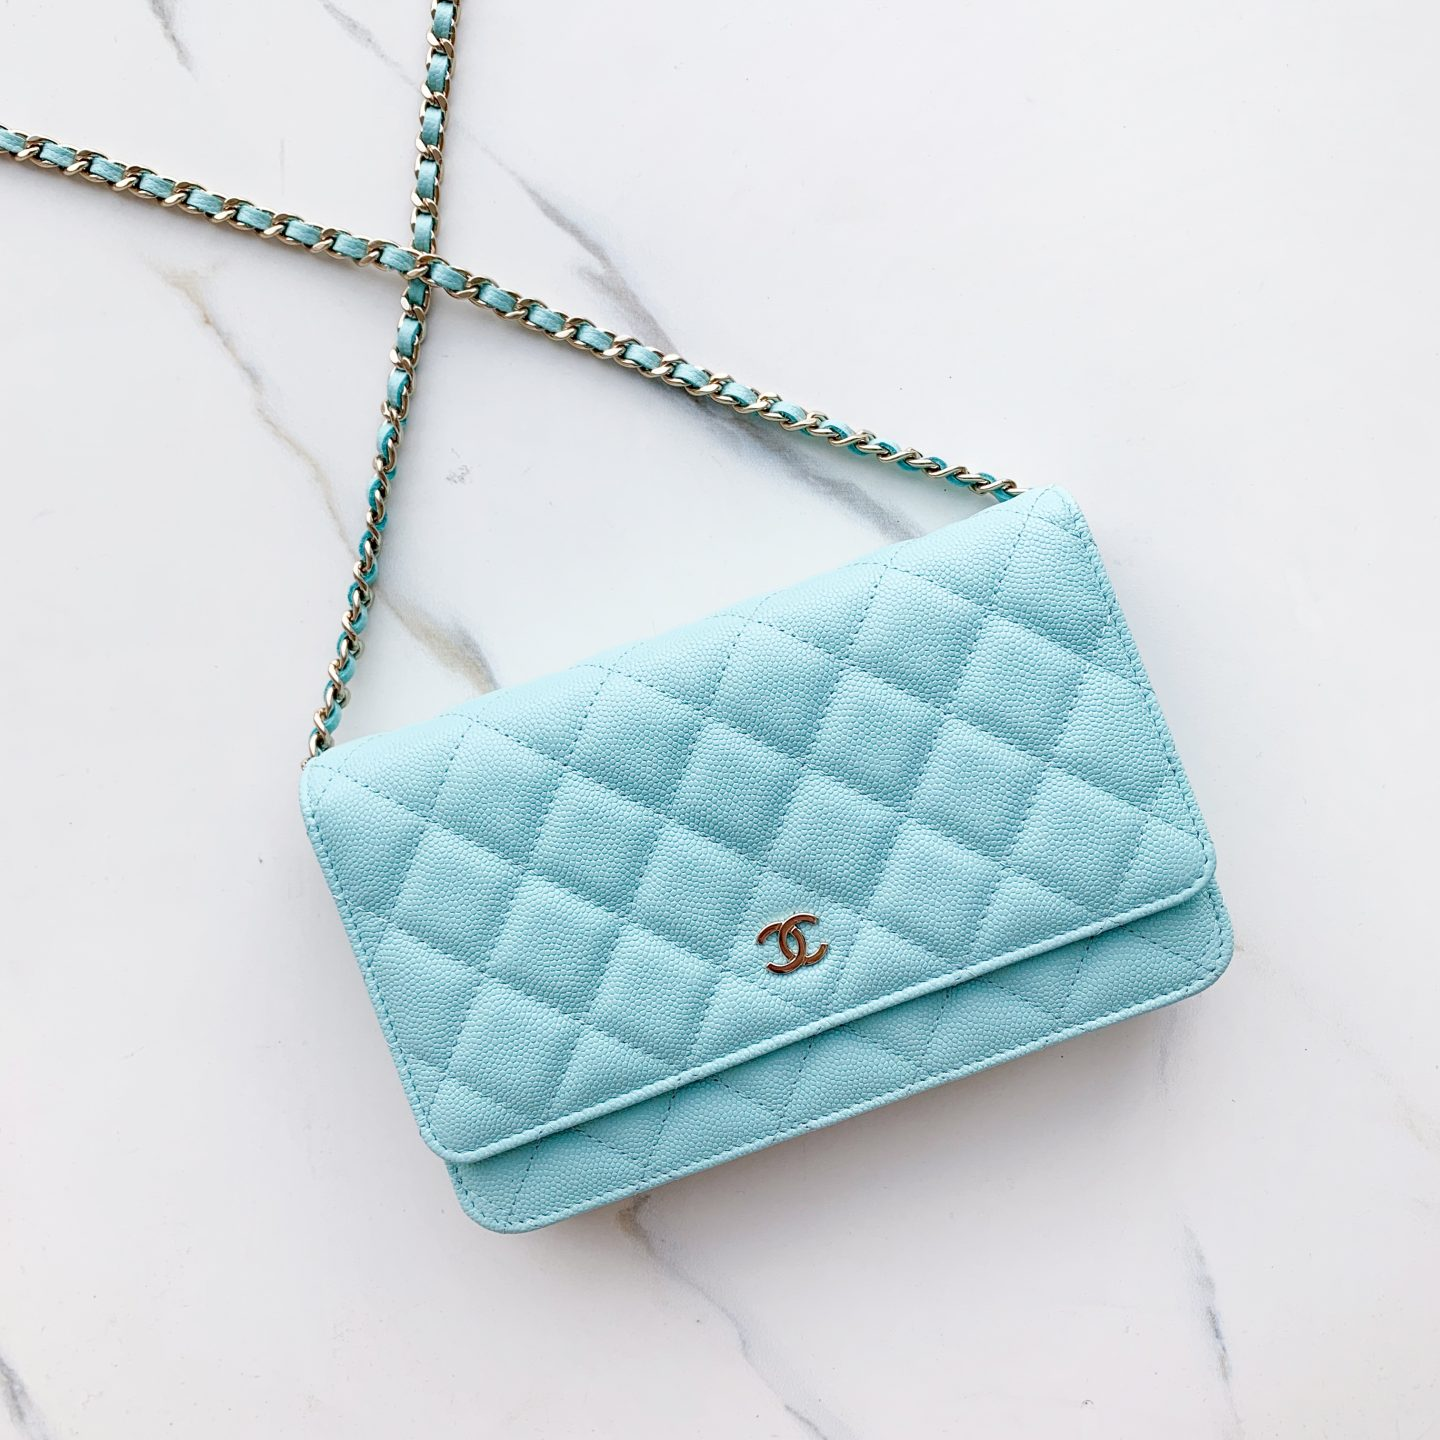 777f7ddf9c2a95 Now obviously, any bag you like can make for a good first Chanel purchase  but generally speaking, there are certain bags which are popular go-tos for  many ...